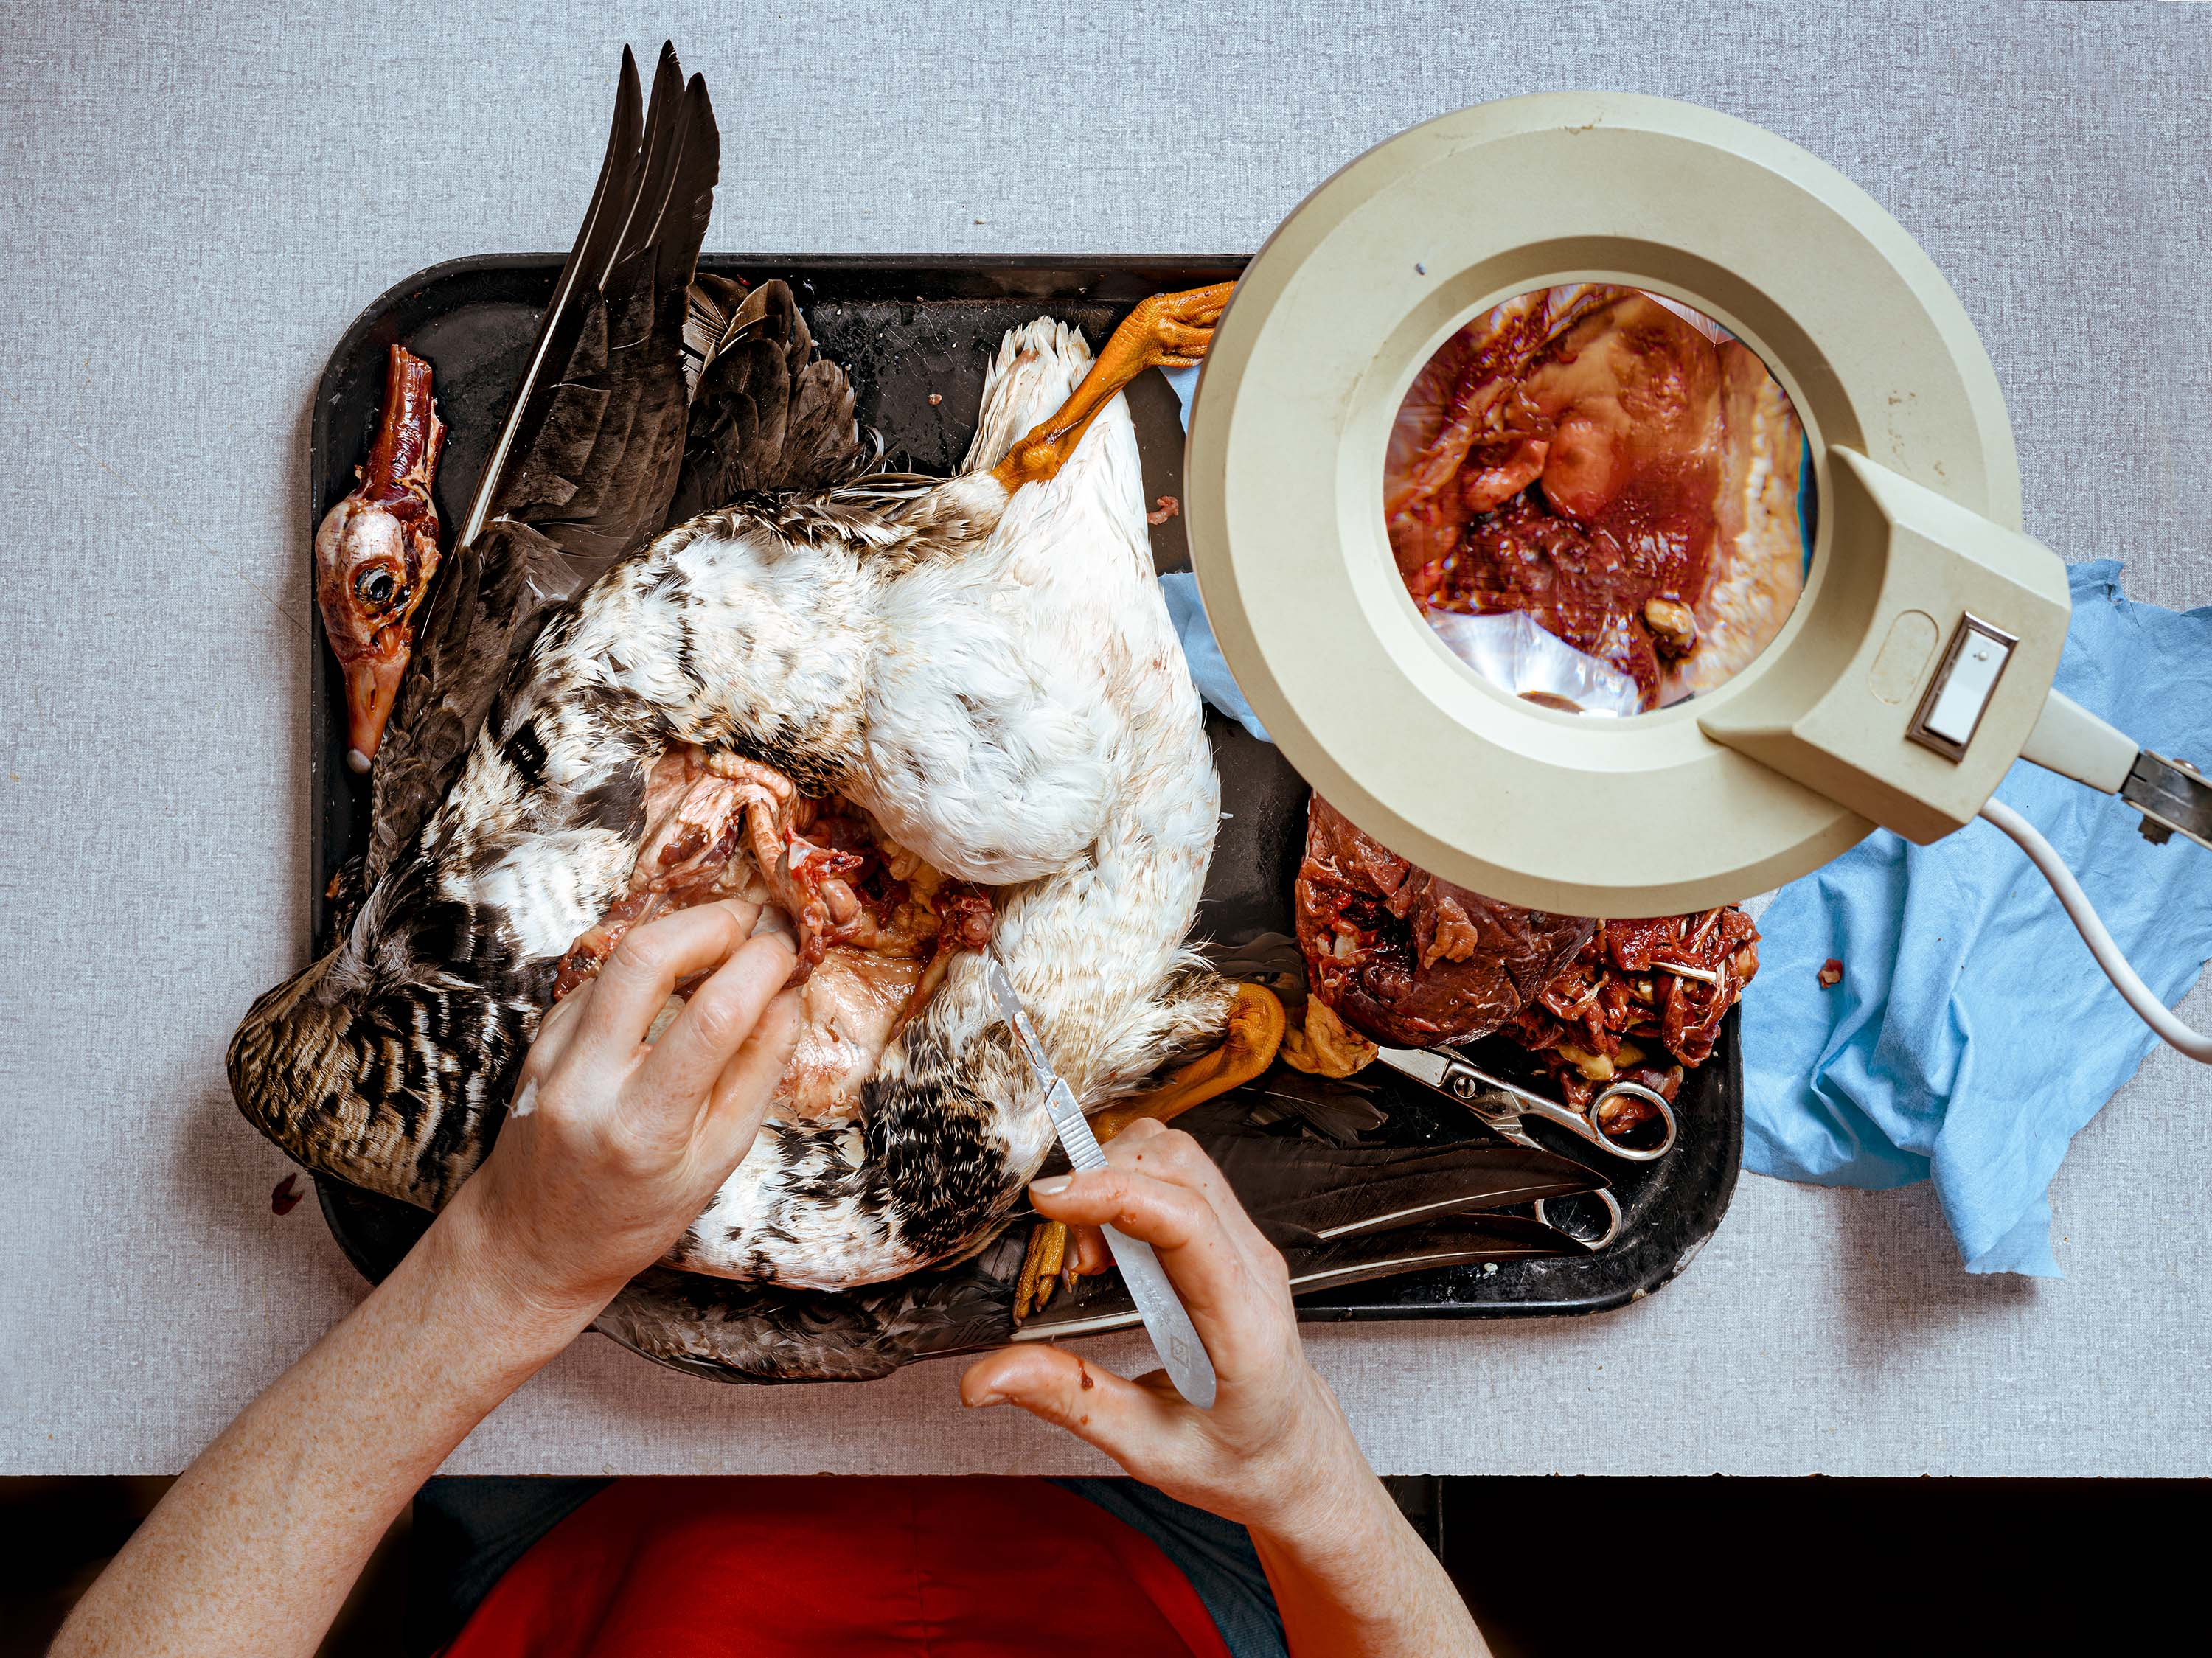 Taxidermist skinning a goose